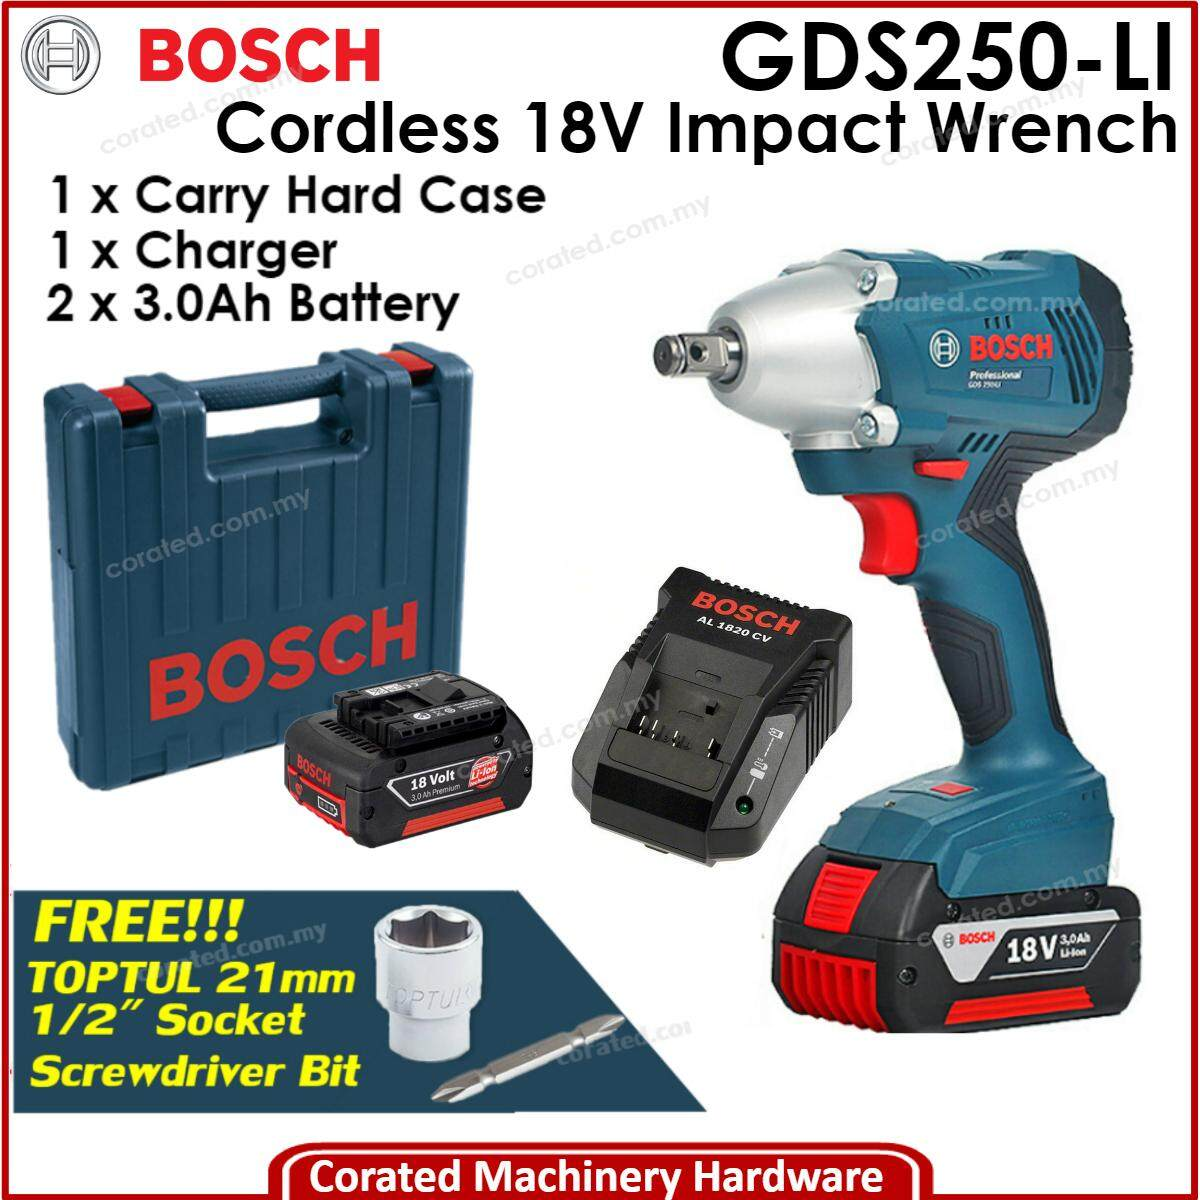 [CORATED] Bosch GDS 250-LI 18Volt Cordless Impact Wrench GDS250-LI GDS250